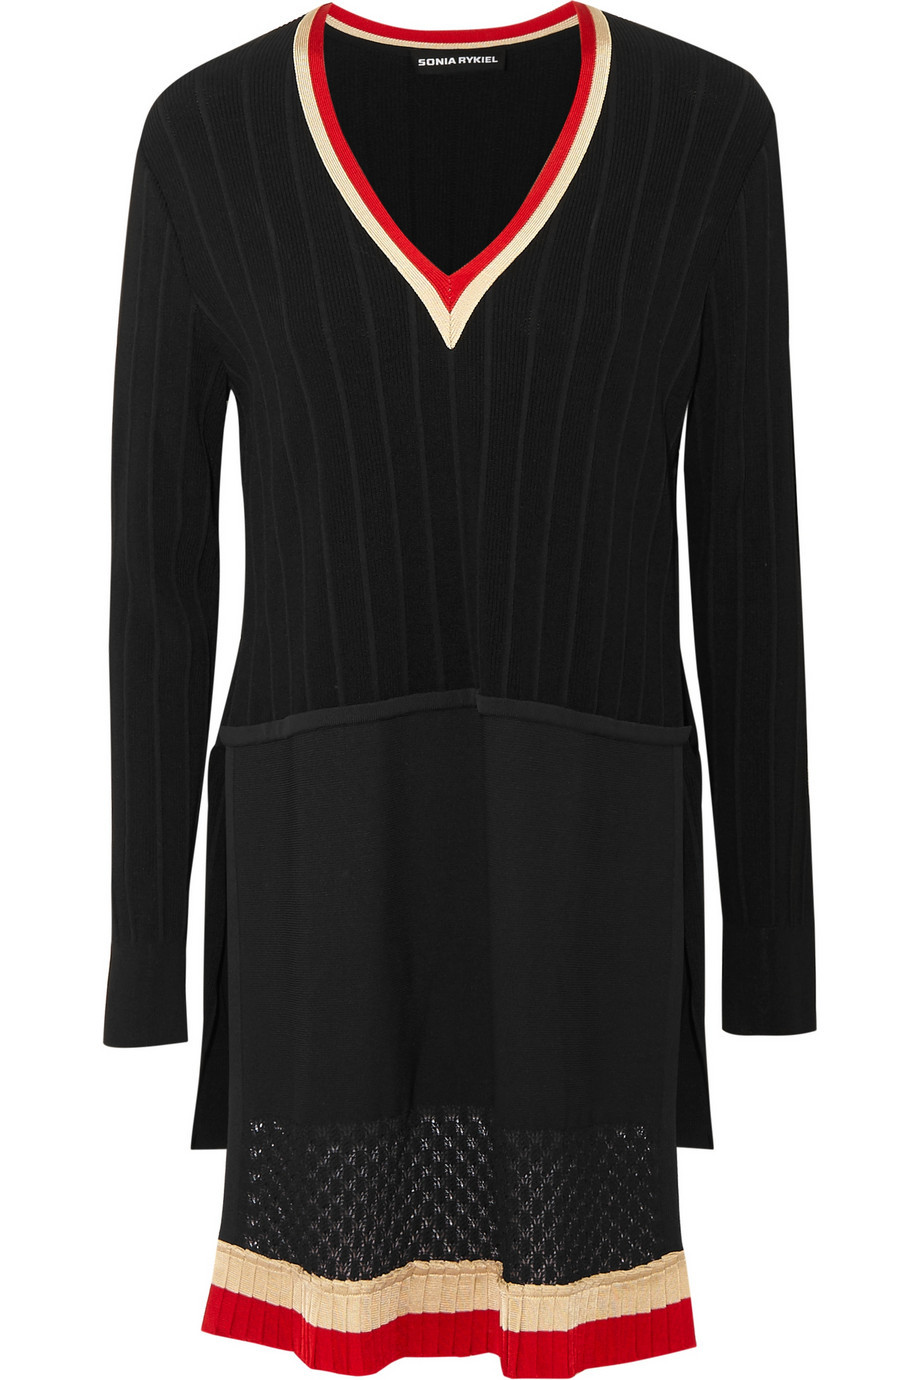 Ribbed Knit Sweater Tunic Black - neckline: low v-neck; pattern: plain; style: tunic; predominant colour: black; occasions: casual, creative work; fit: standard fit; length: mid thigh; hip detail: contrast fabric/print detail at hip; sleeve length: long sleeve; sleeve style: standard; texture group: knits/crochet; pattern type: knitted - fine stitch; fibres: viscose/rayon - mix; multicoloured: multicoloured; season: a/w 2015; wardrobe: highlight